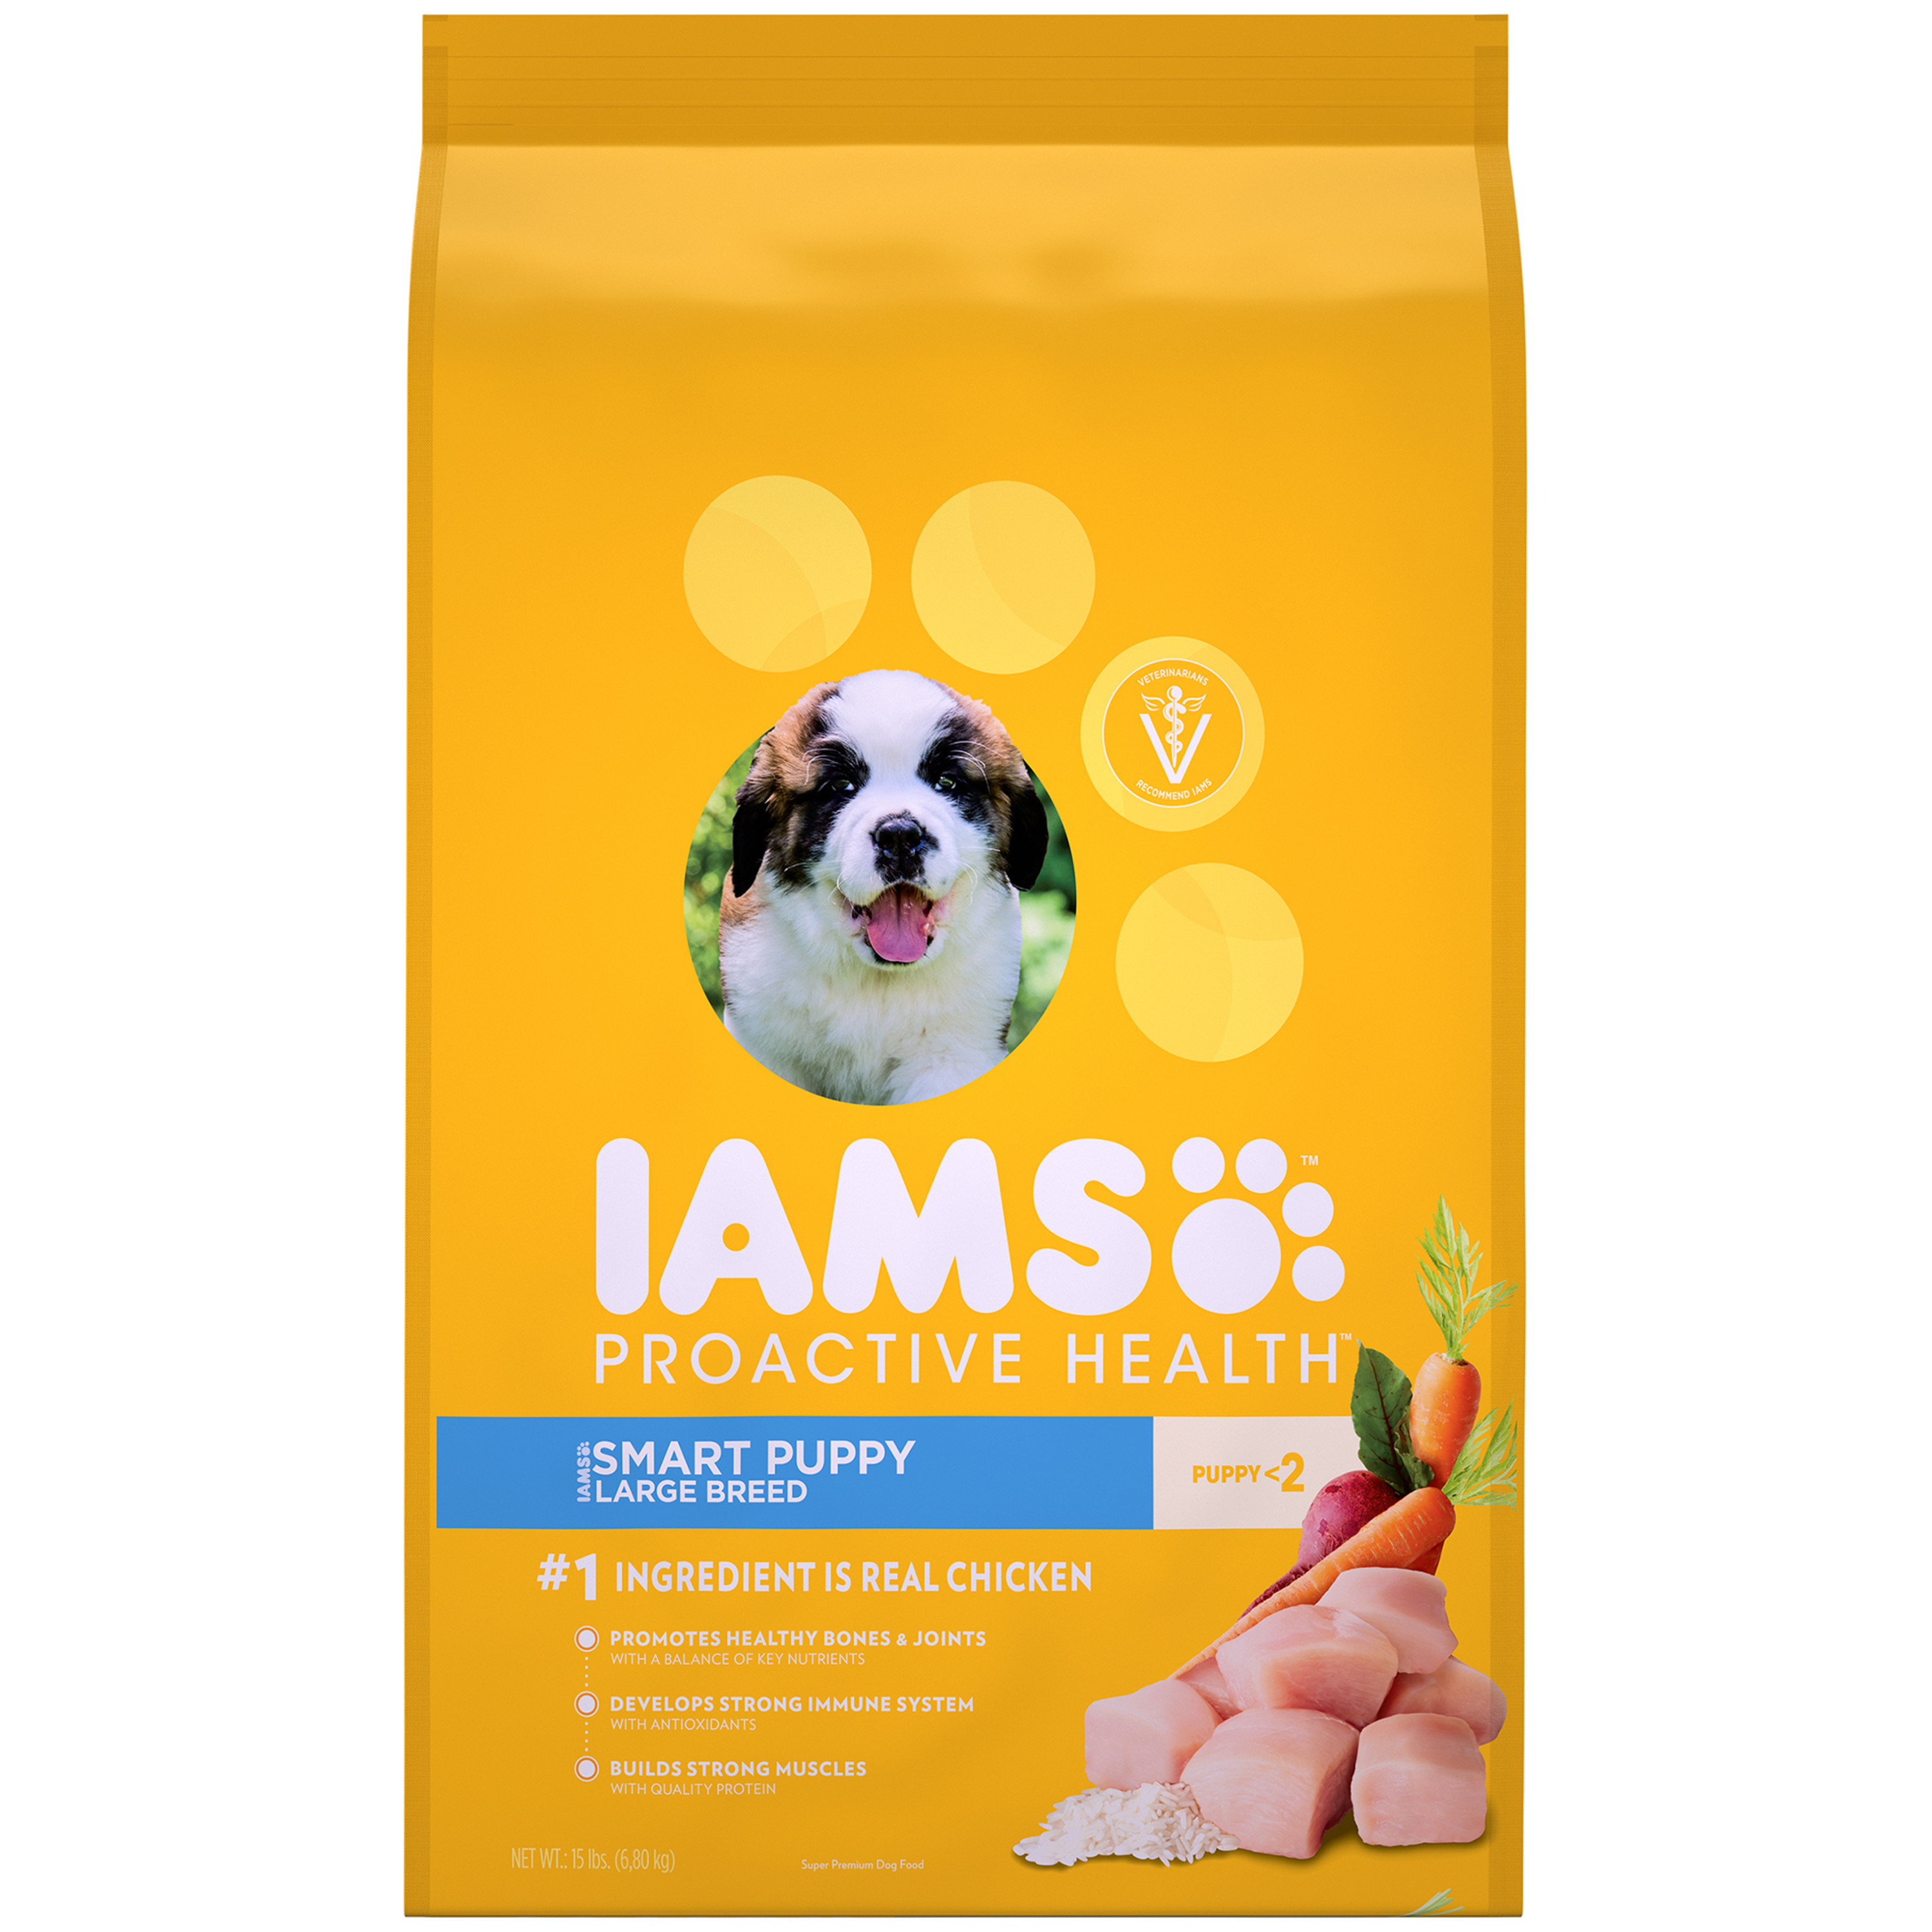 IAMS ProActive Health Smart Puppy Dog Food for Large Dogs – Chicken, 15 Pound Bag